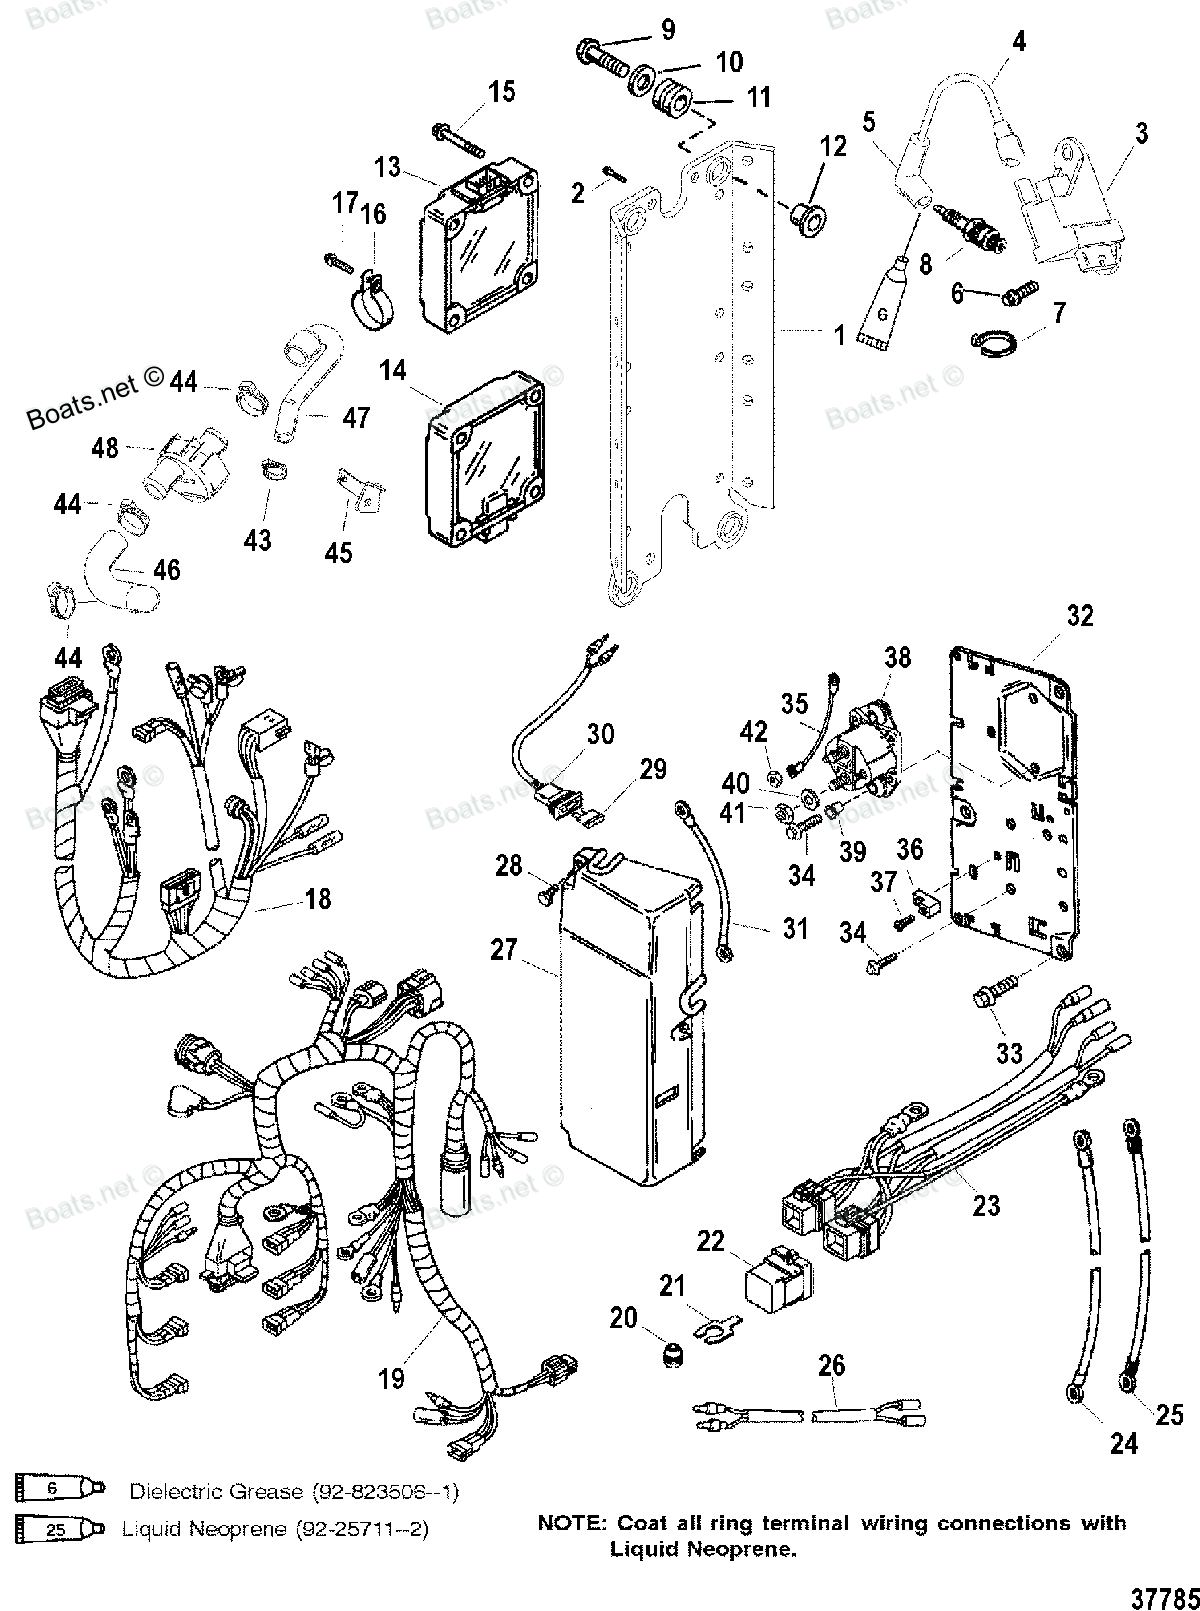 88 Volvo 240 Starter Ignition Wiring Diagram further Power Distribution Diagram 2001 Explorer as well Motorguide Head 7 75v Wiring Diagram likewise Electrical Fuse Boxes Diagram likewise Mercury Outboard Motor Wiring Diagram. on mercury outboard alarm wiring diagram html